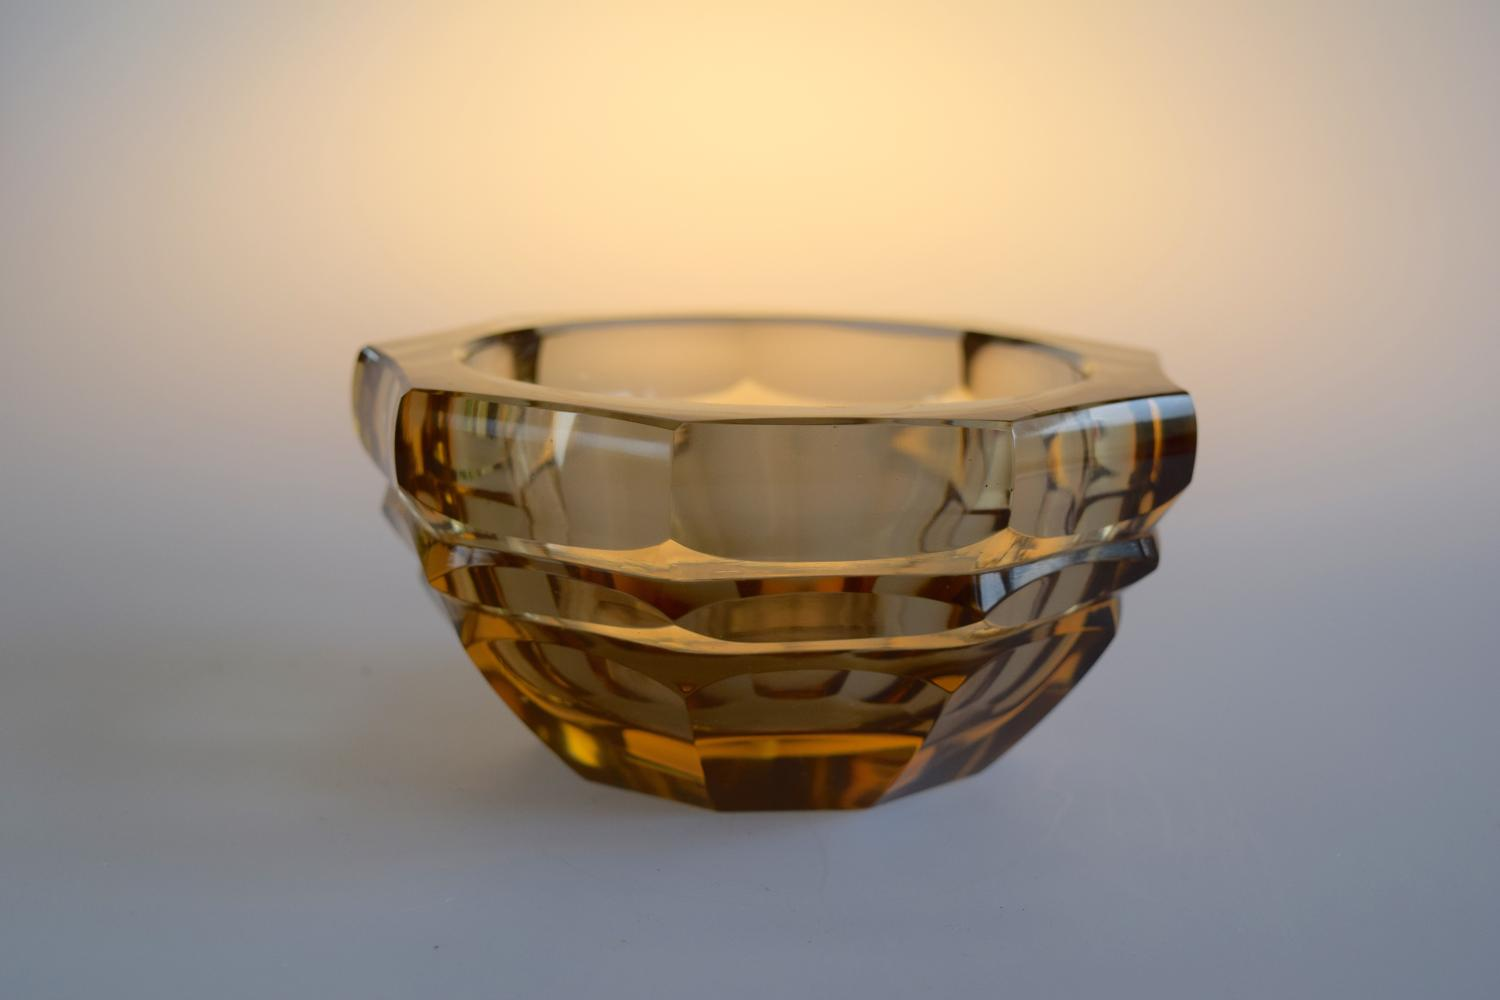 Small bowl by Daum